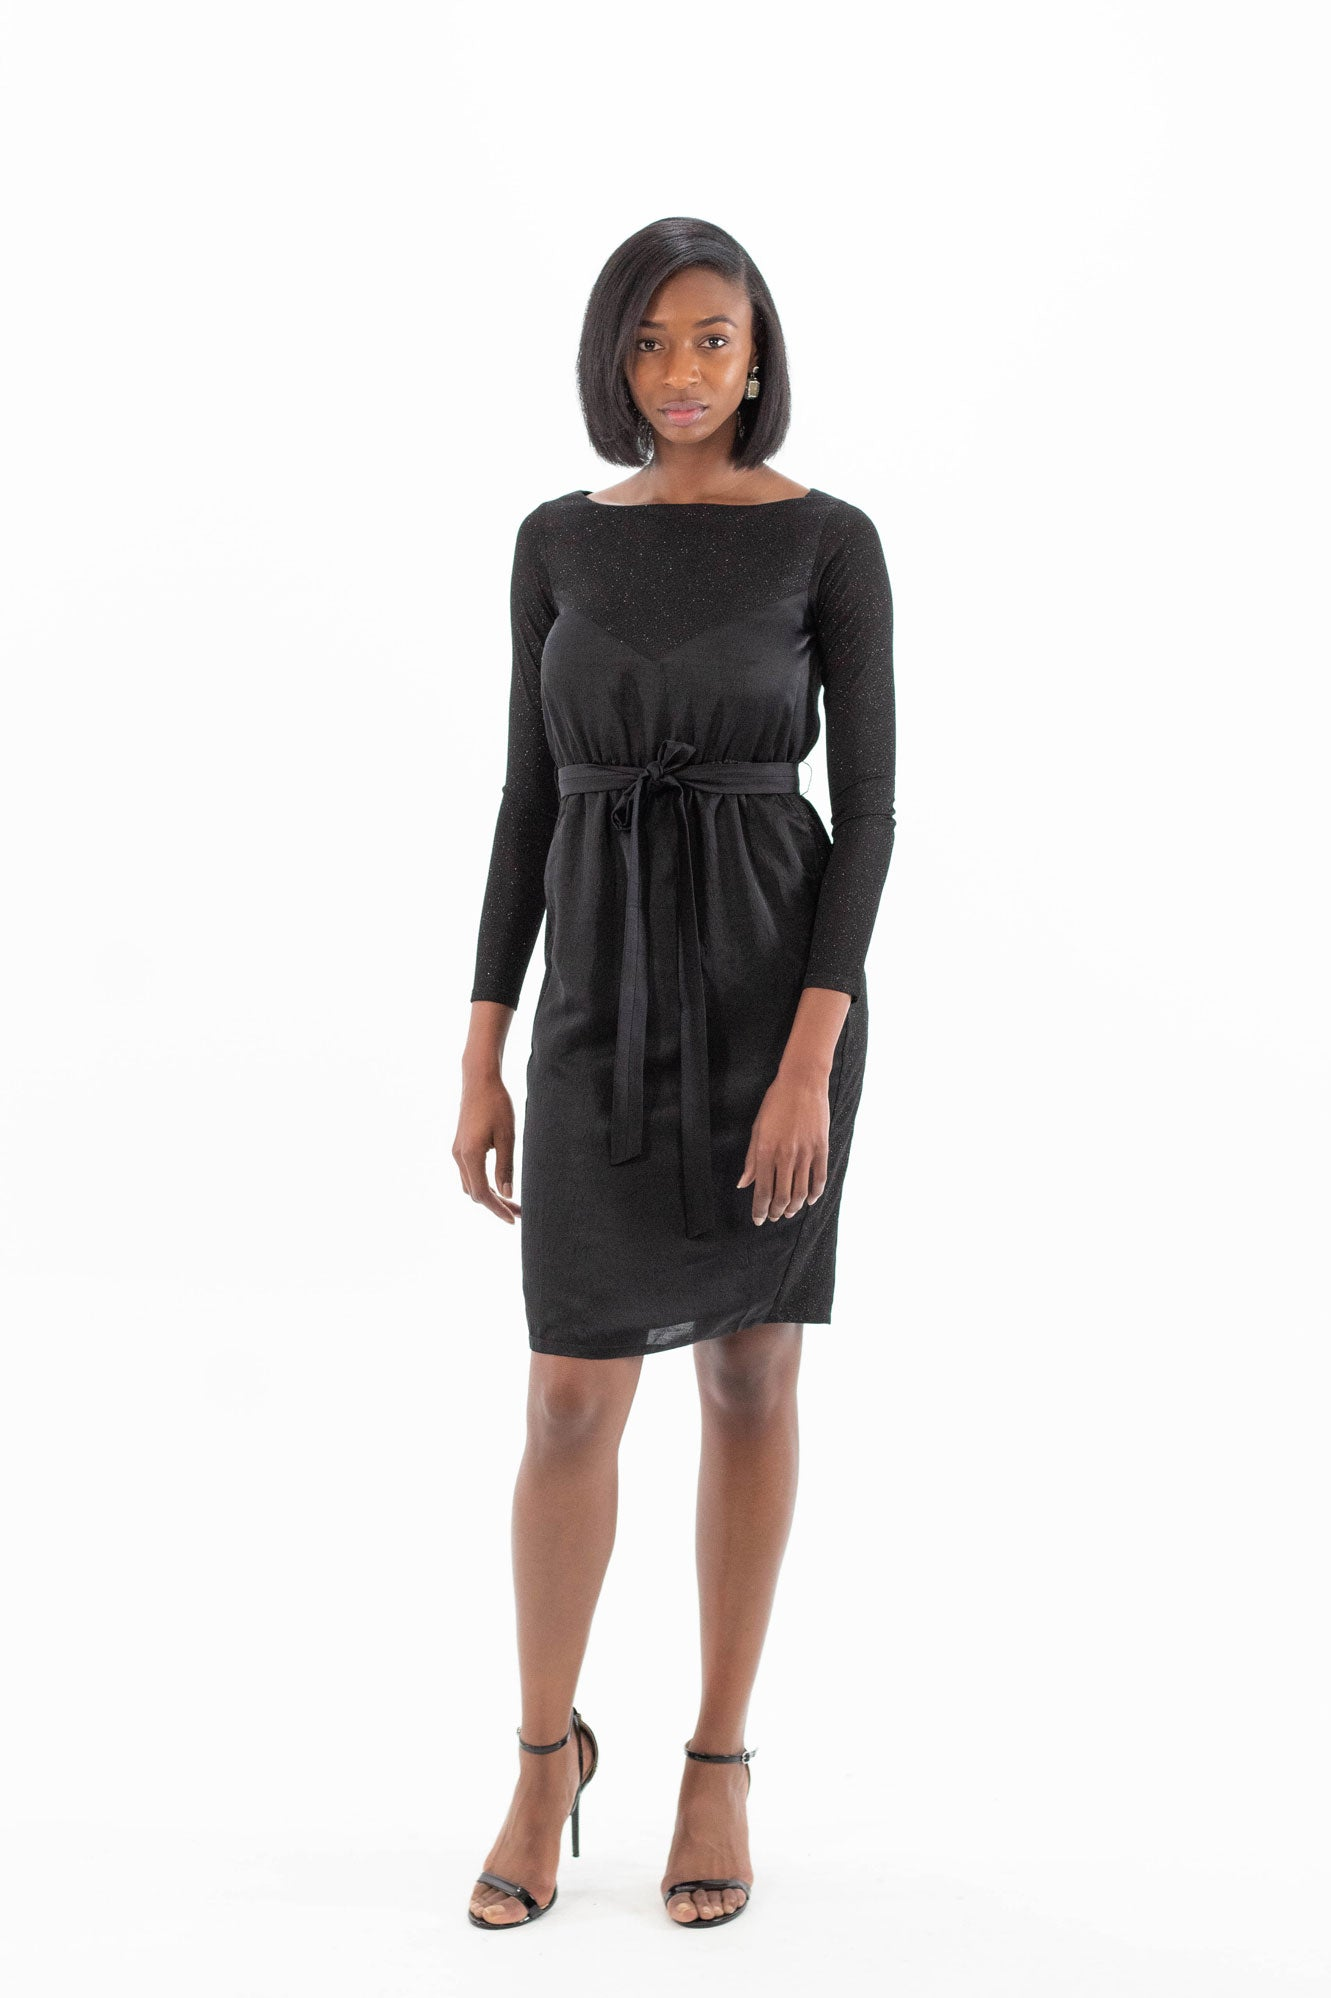 Black Party Dress with Pockets